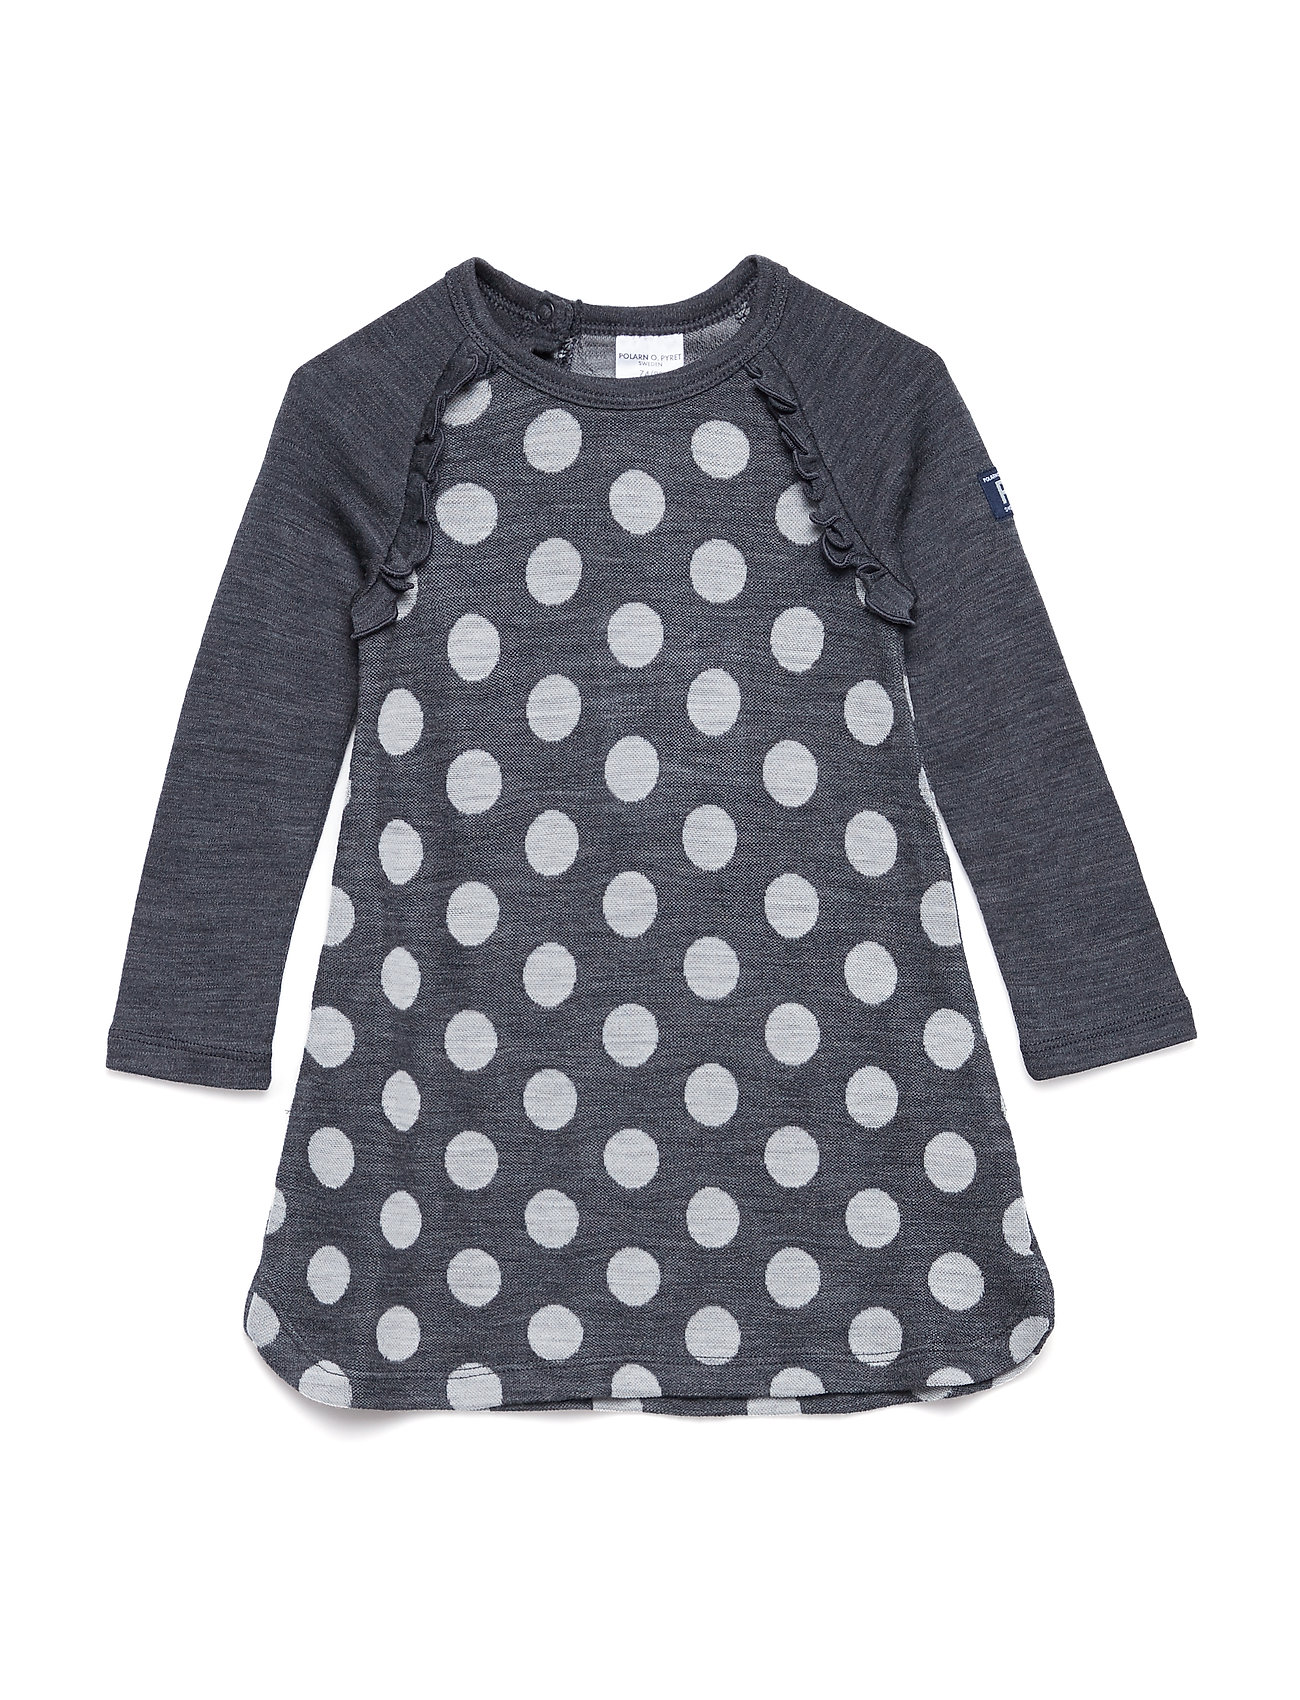 Polarn O. Pyret Dress Long Sleeve Wool Solid Baby